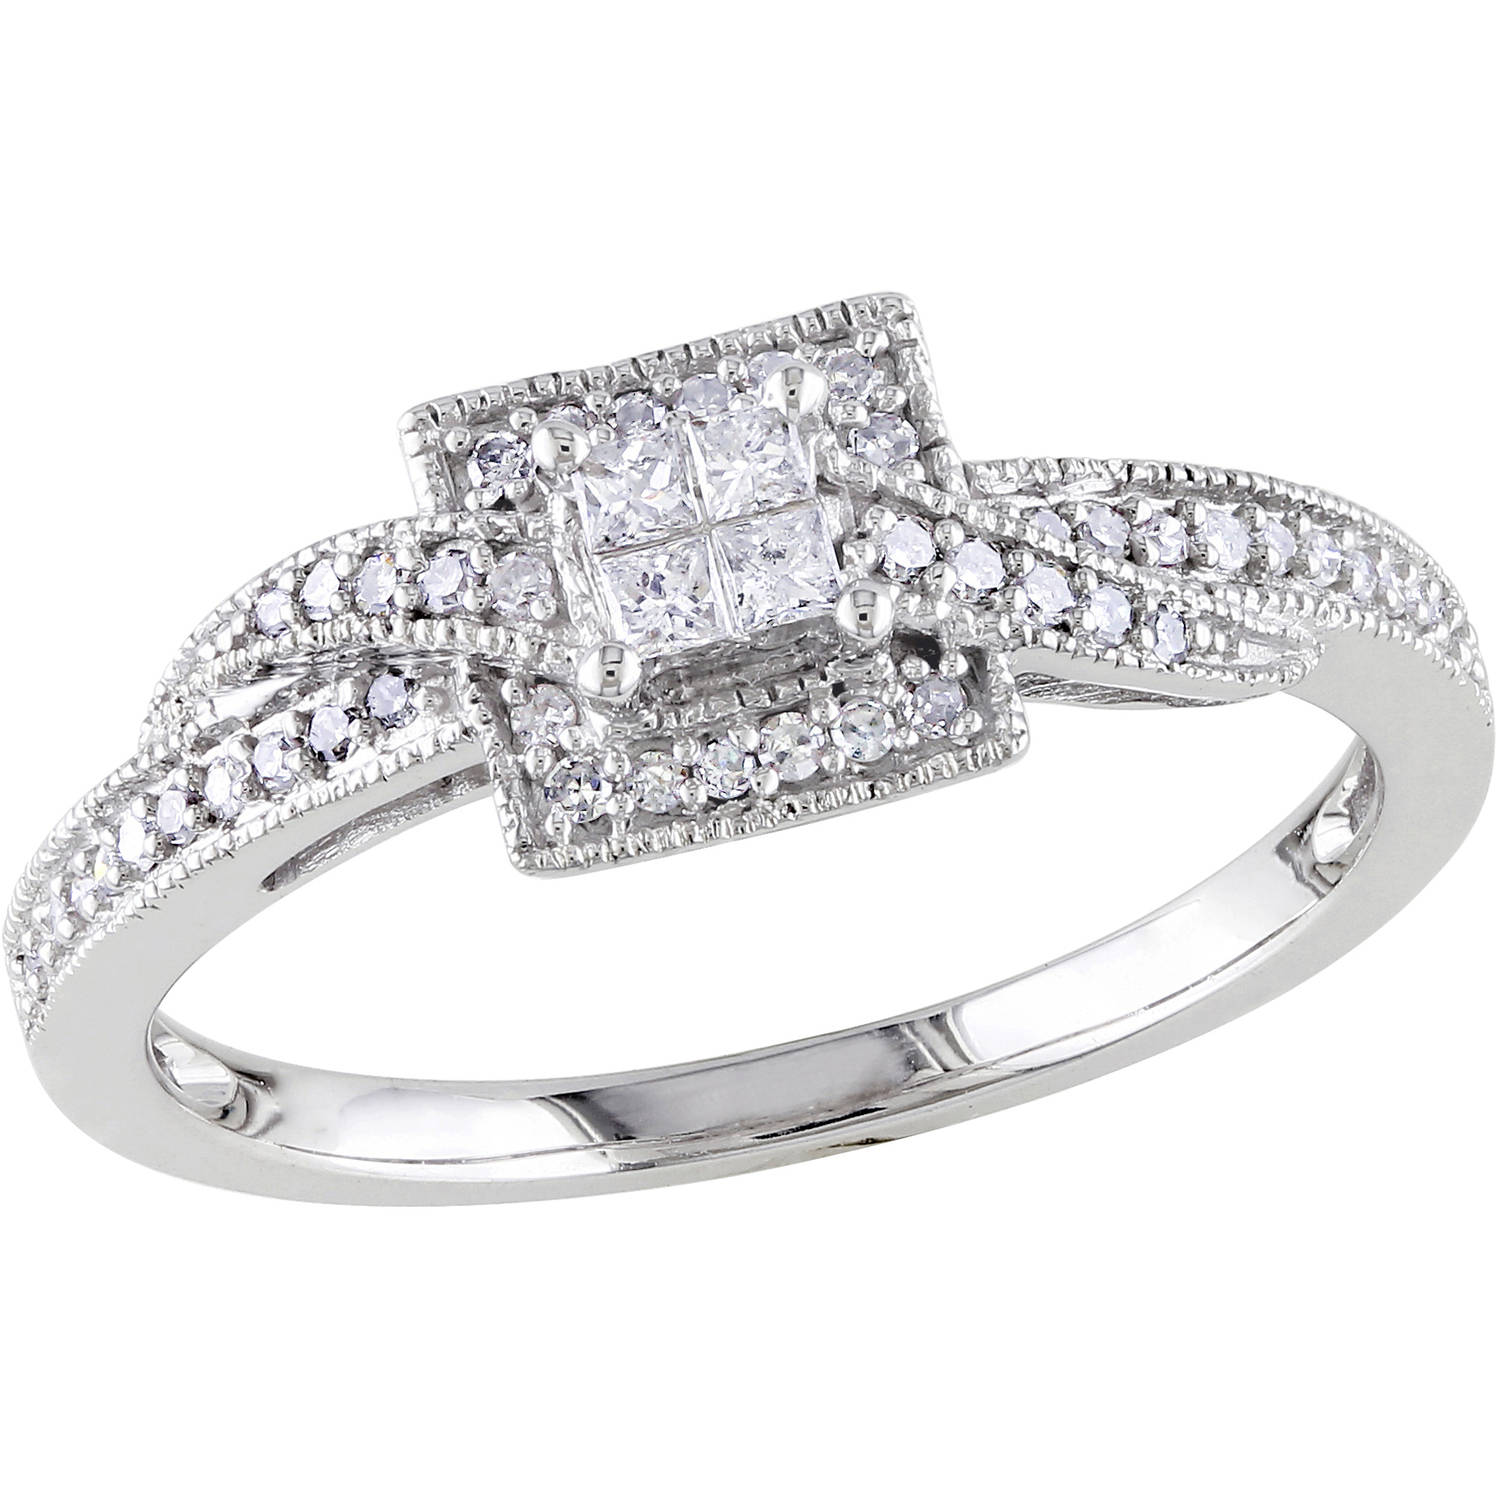 Miabella 1/4 Carat T.W. Princess and Round-Cut Diamond 10kt White Gold Cross-Over Engagement Ring